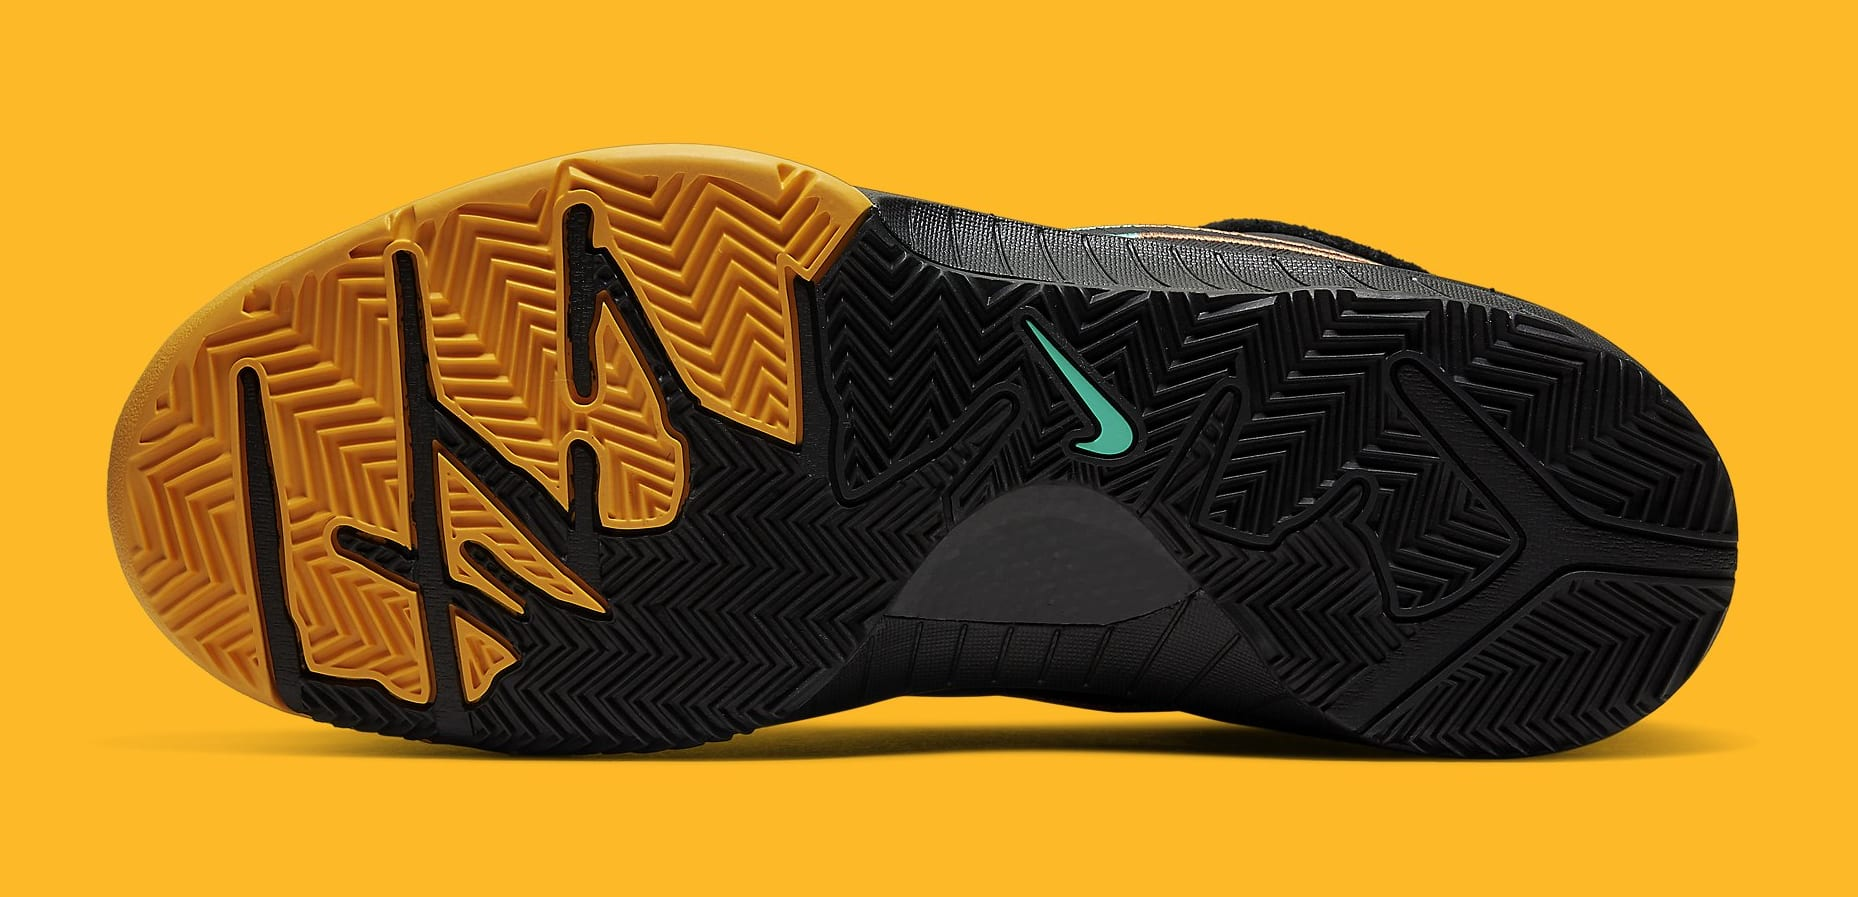 nike-zoom-kobe-4-iv-protro-black-aurora-green-university-gold-av6339-002-outsole